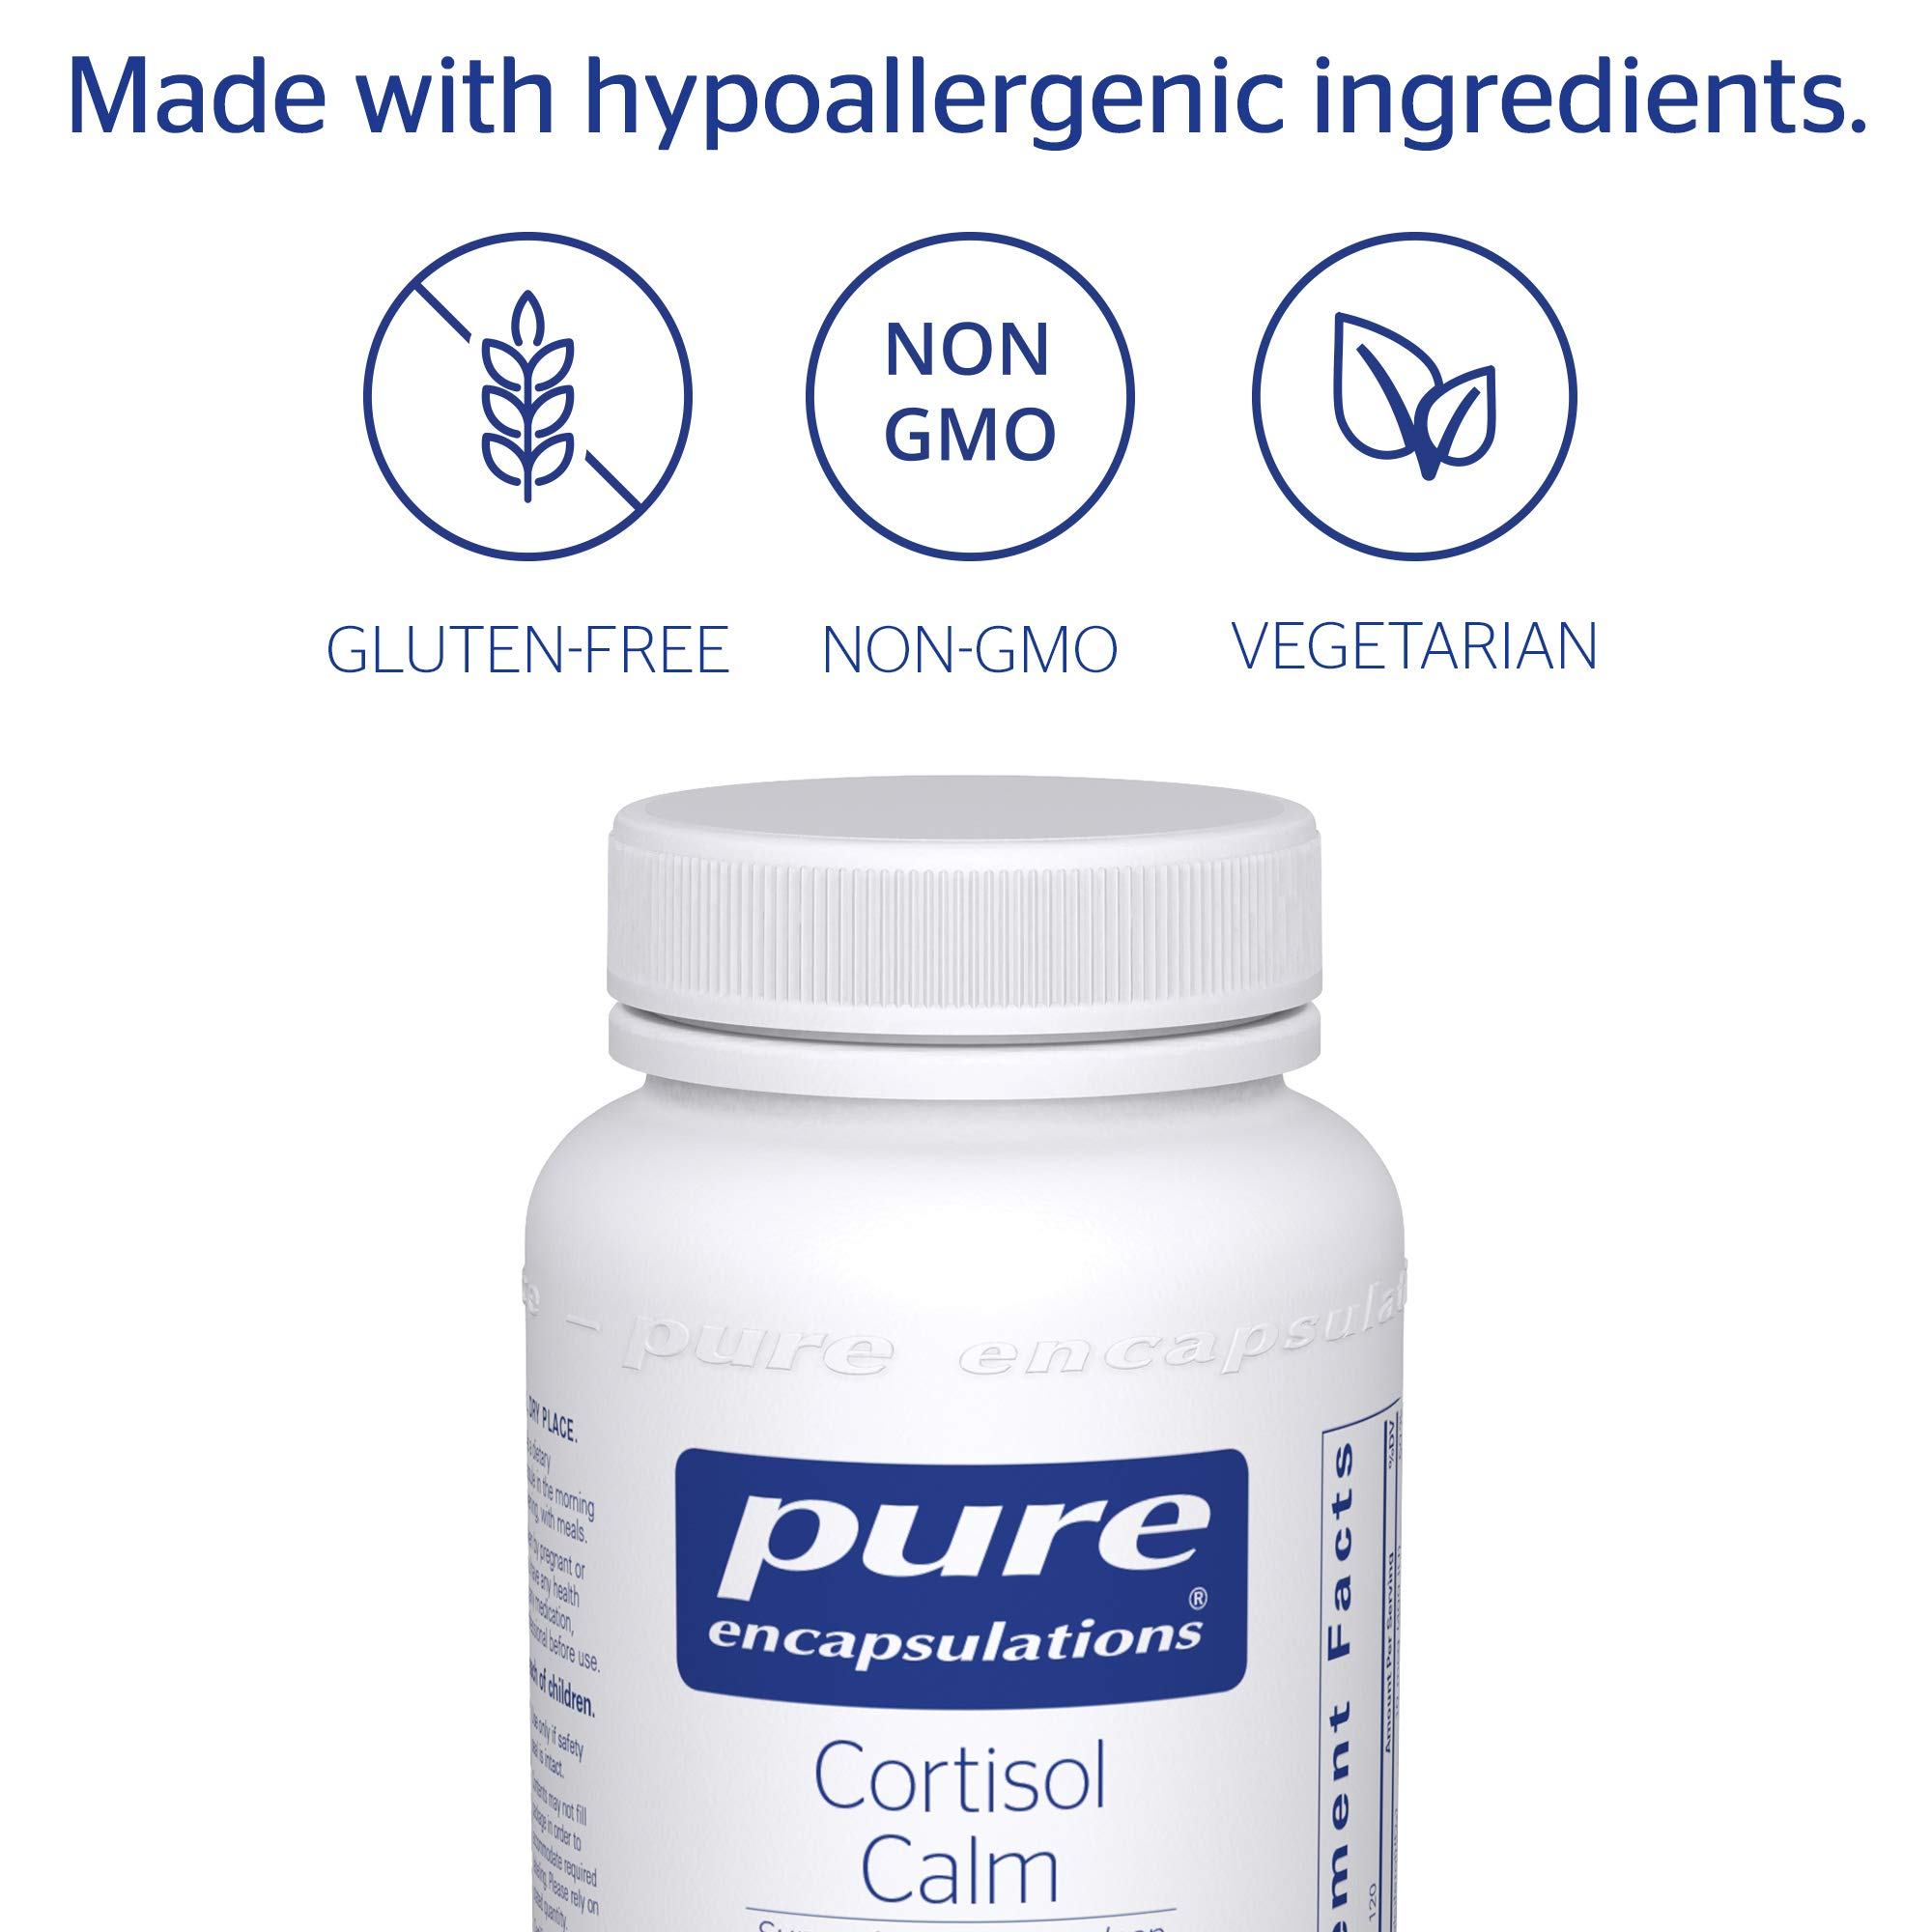 Pure Encapsulations - Cortisol Calm - Hypoallergenic Supplement to Maintain Healthy Cortisol Levels* - 120 Capsules by Pure Encapsulations (Image #4)